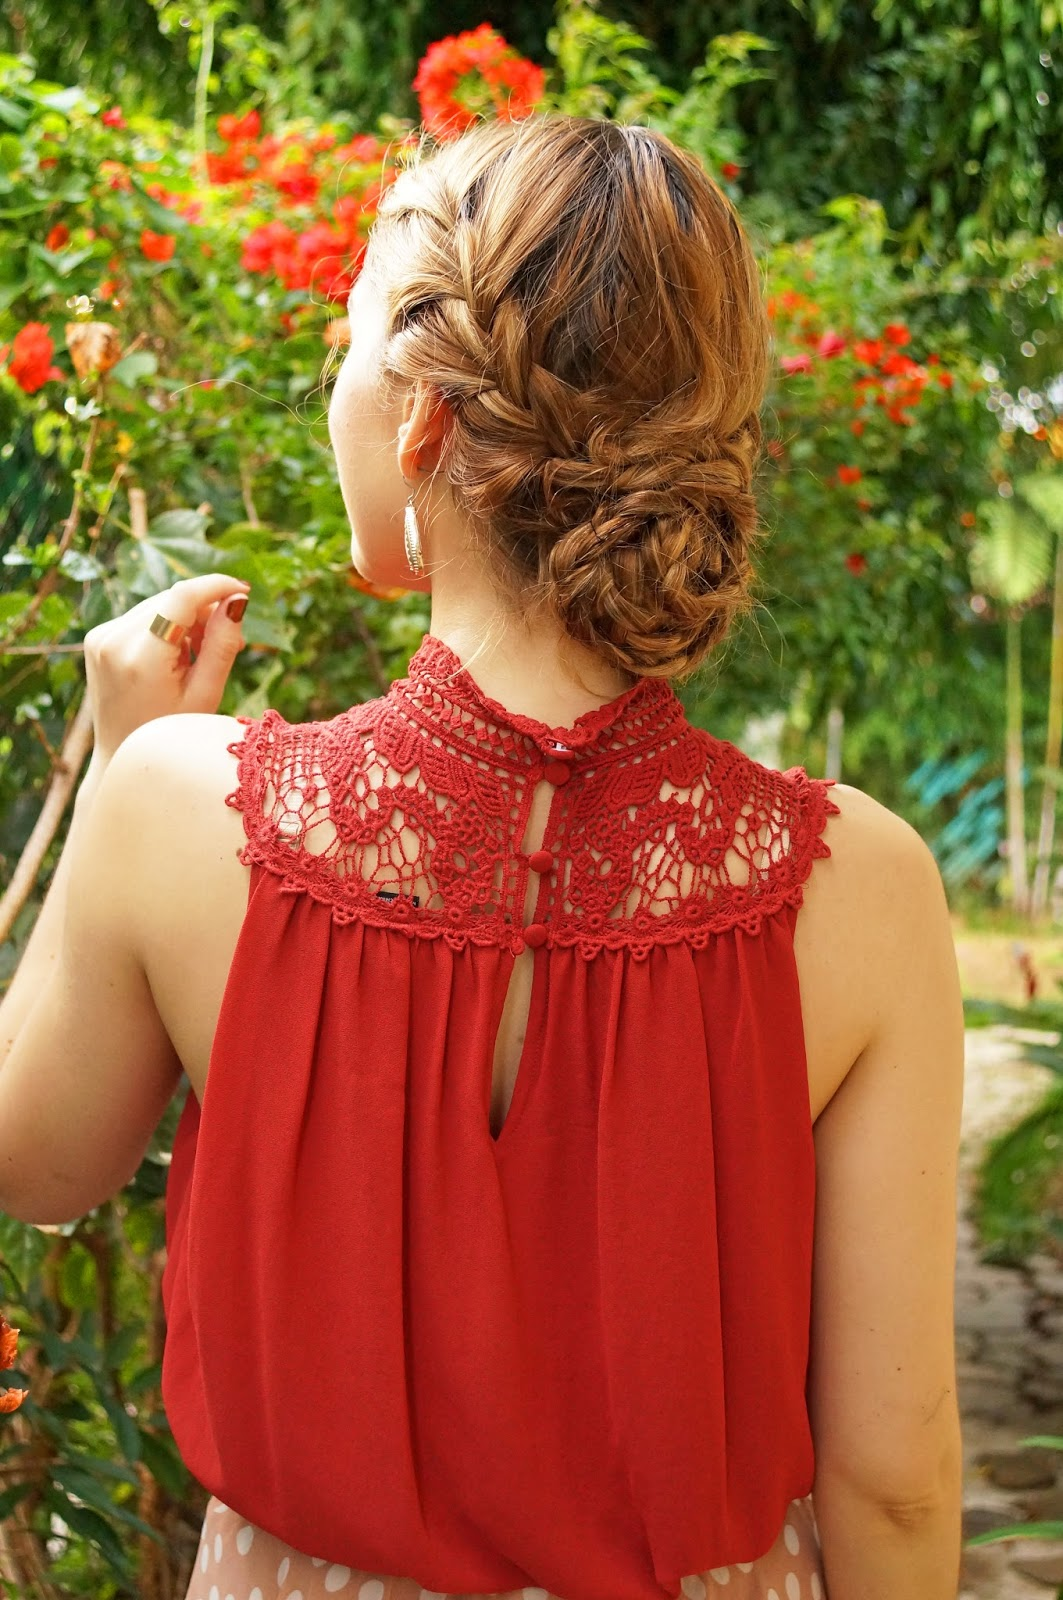 Gorgeous Braided Updo Hairstyle. This would be great for a Summer wedding!